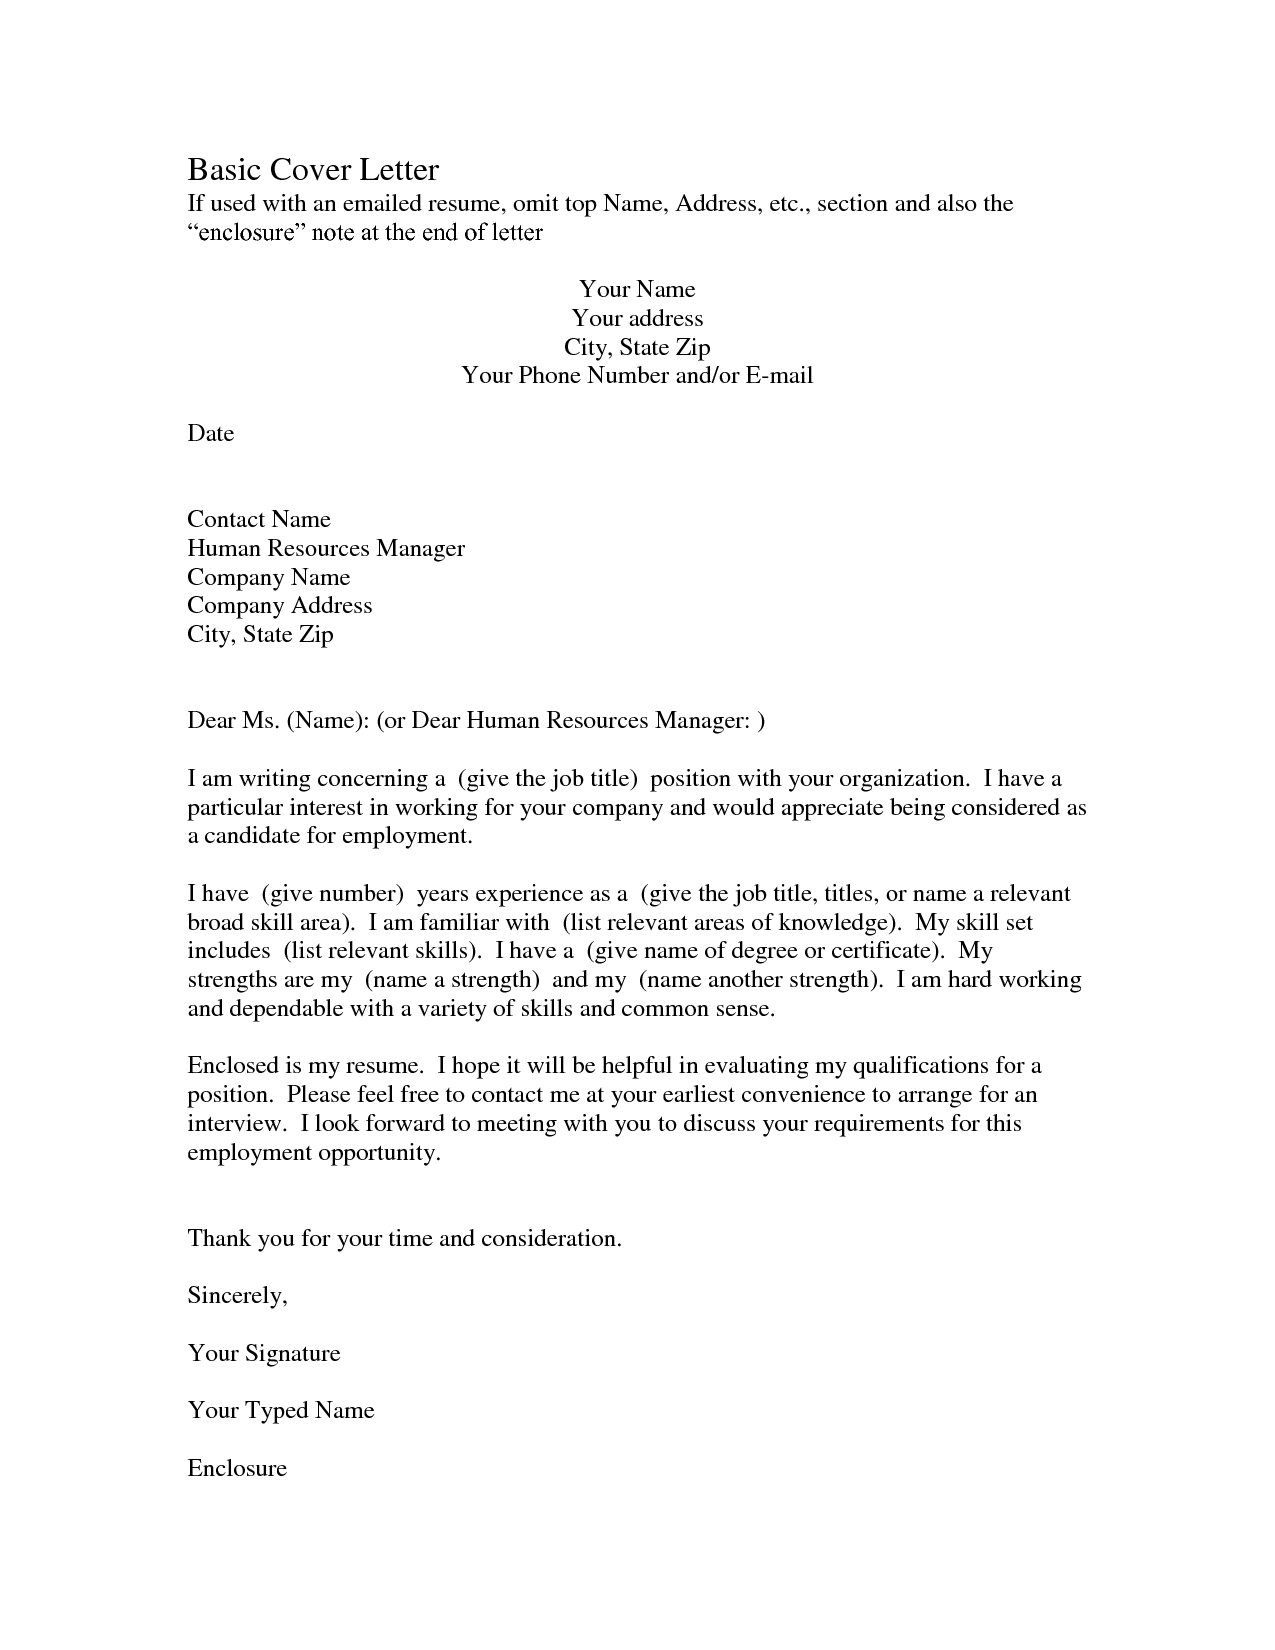 Basic Resume Cover Letter Template - Format of a cover letter